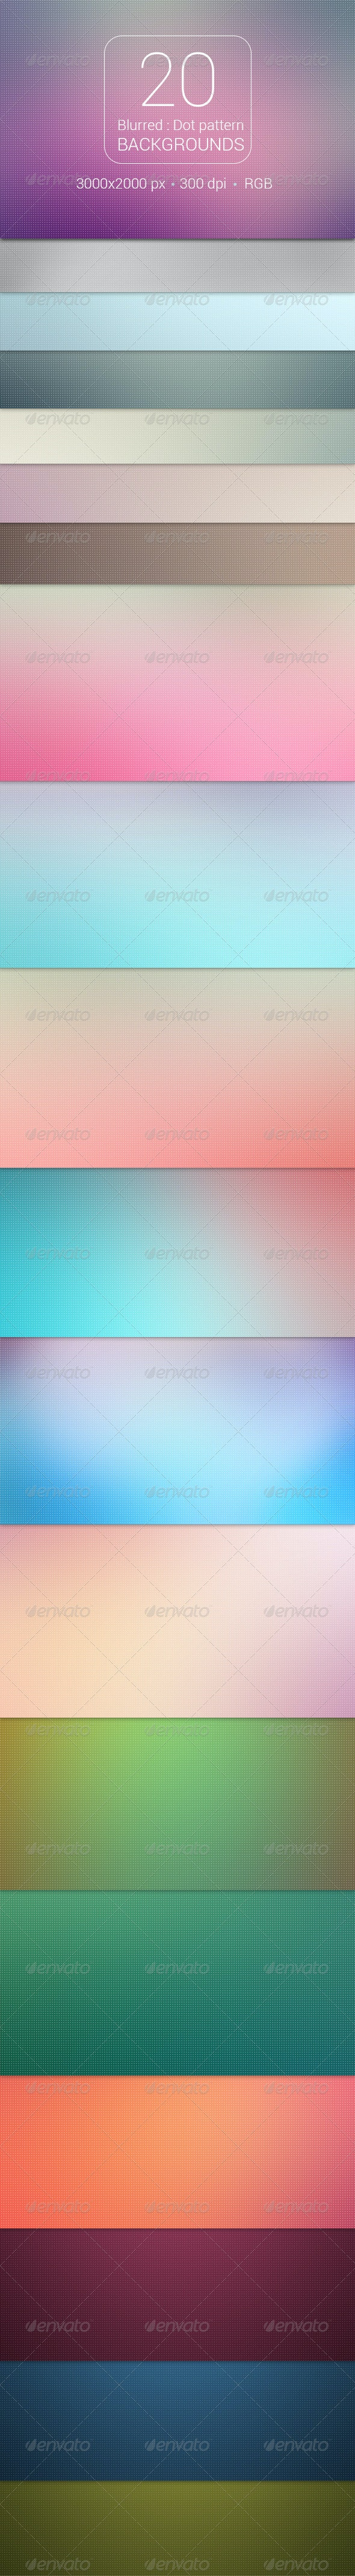 20 Blurred Dot Pattern Backgrounds - Backgrounds Graphics